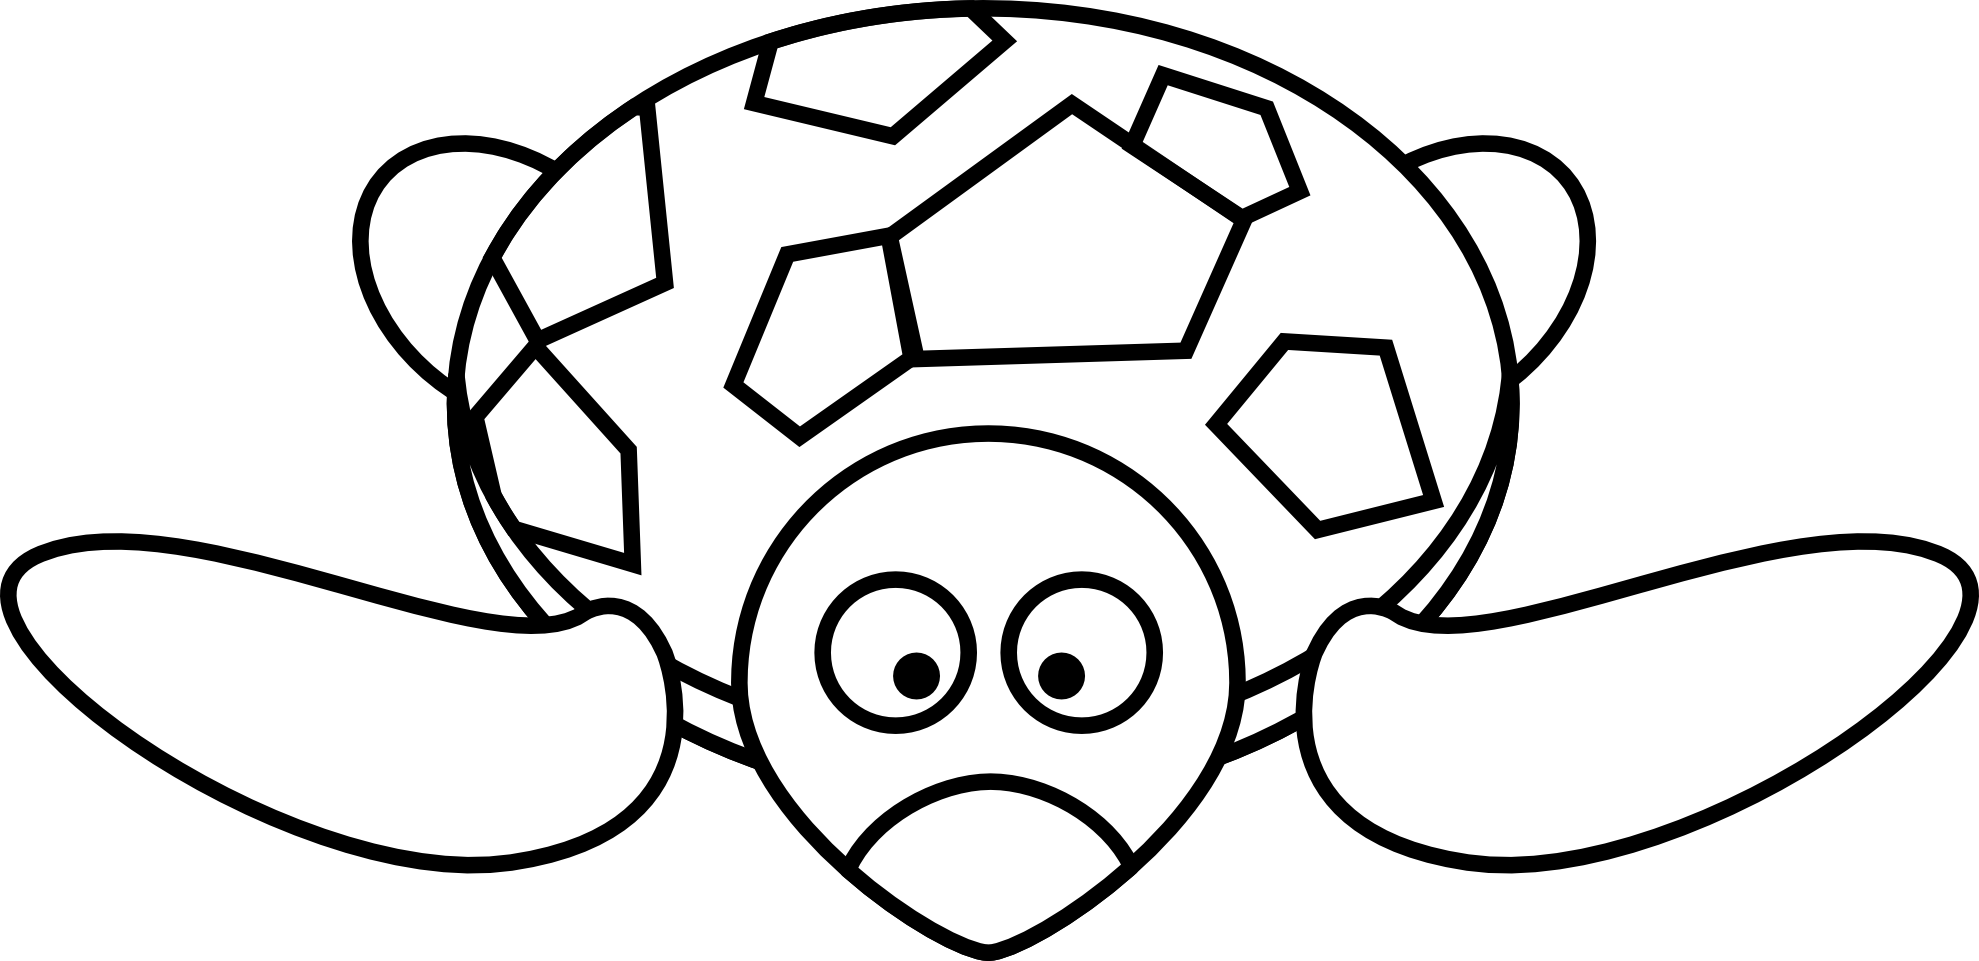 clipart free Animals drawing at getdrawings. Tortoise clipart black and white